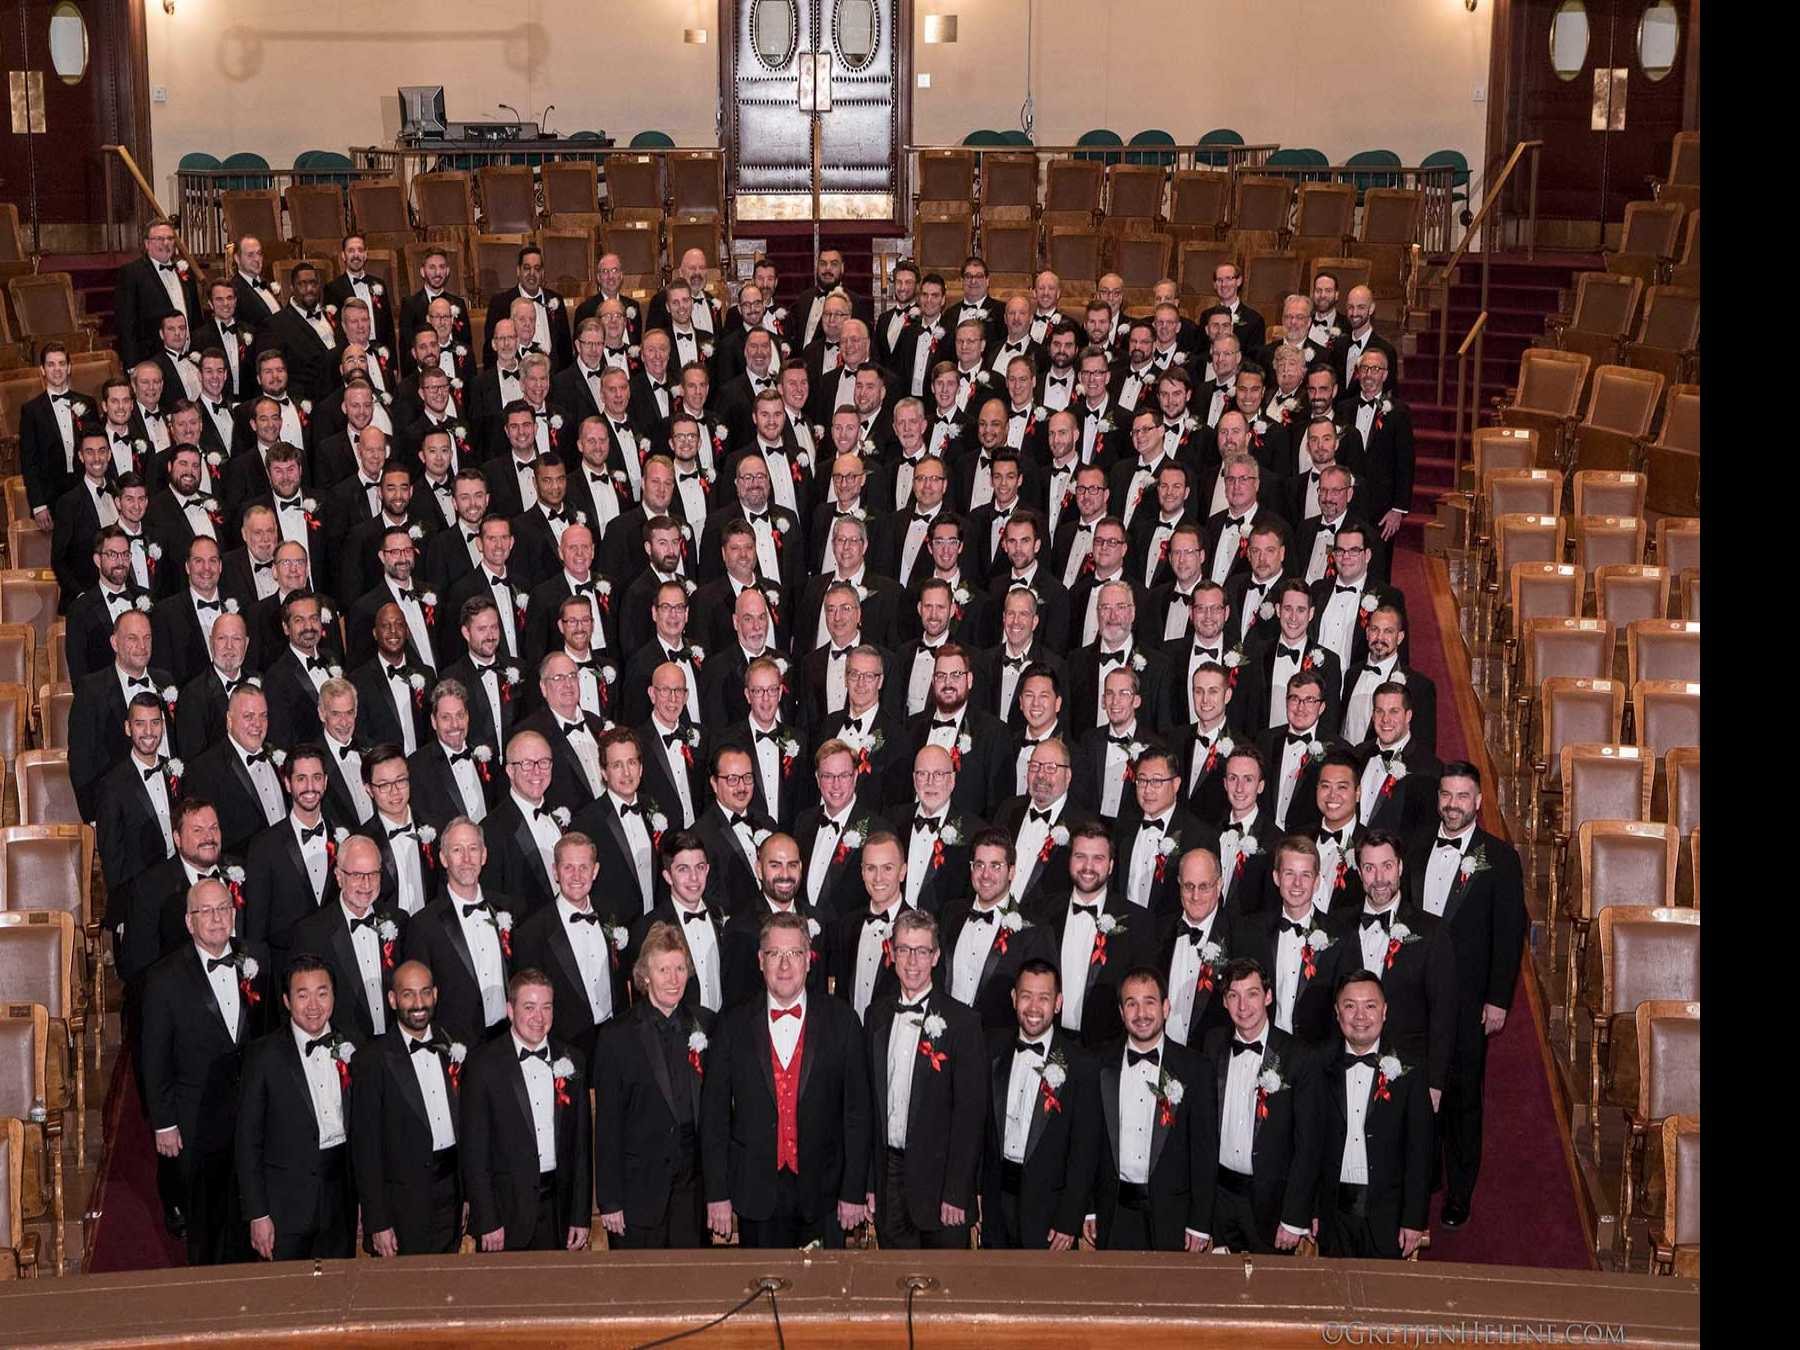 Boston Gay Men's Chorus and Gay Men's Chorus of Los Angeles Face Off in World Series Challenge